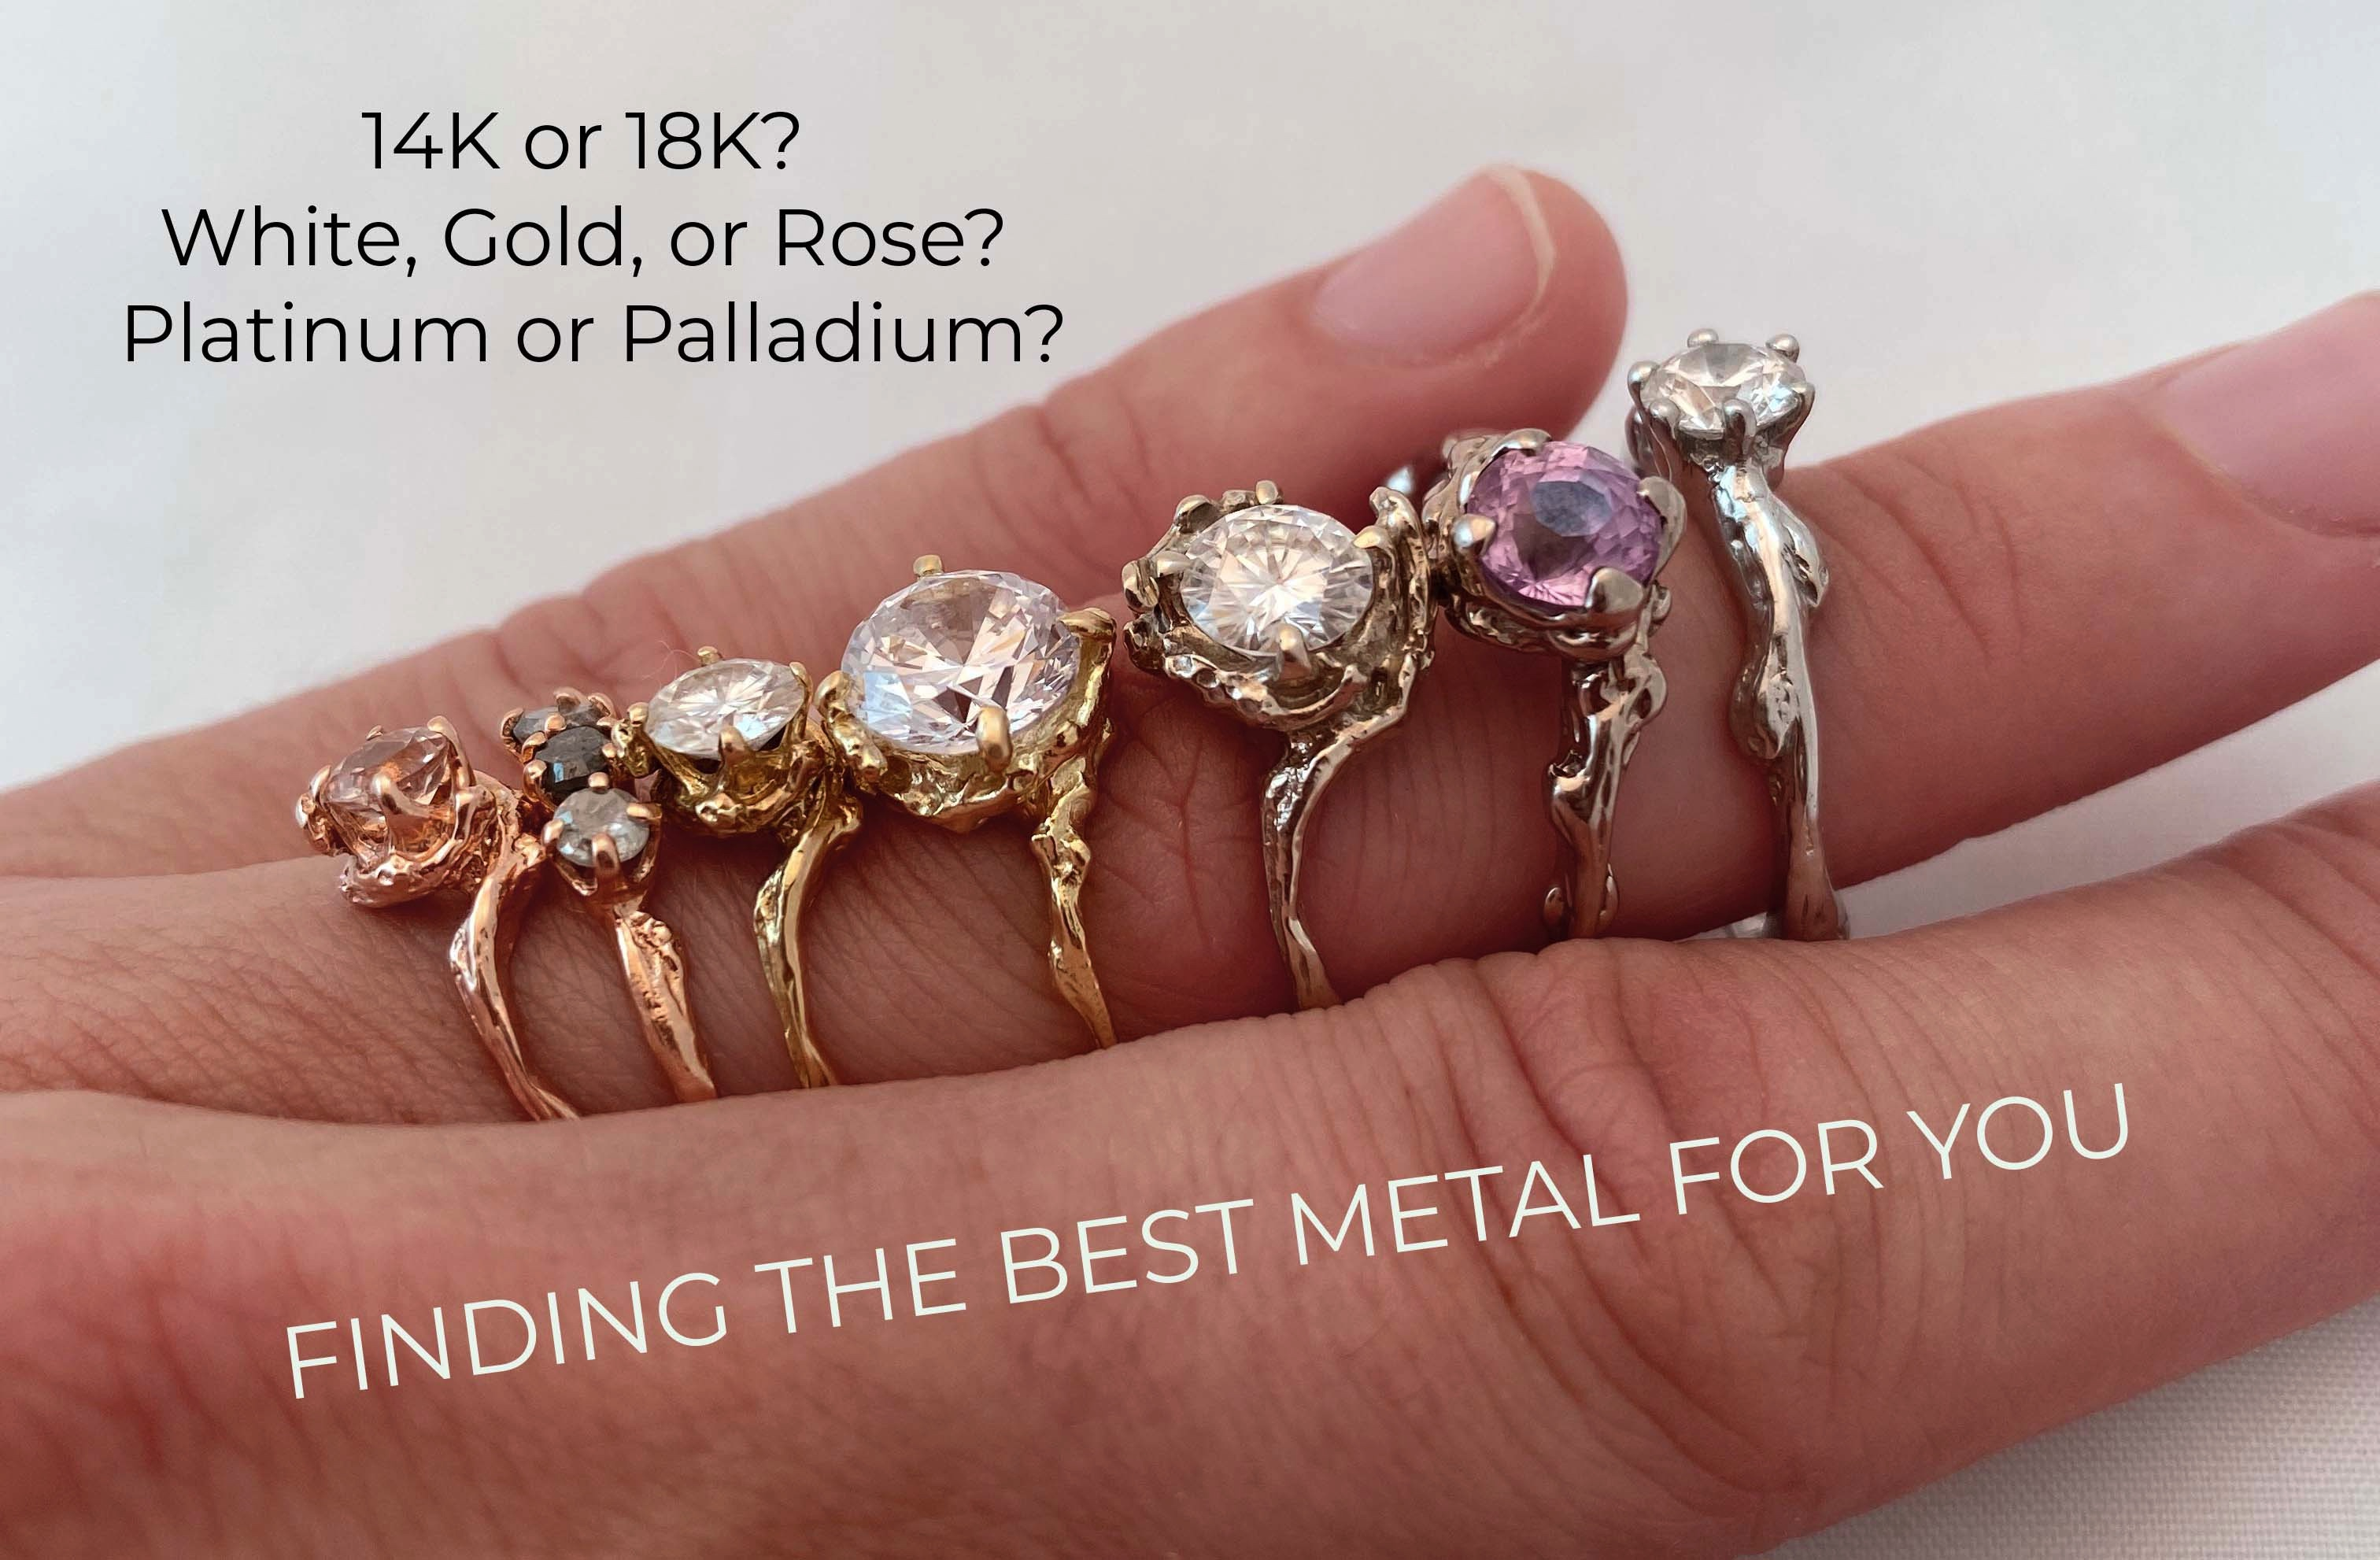 Choosing the Best Metal for You